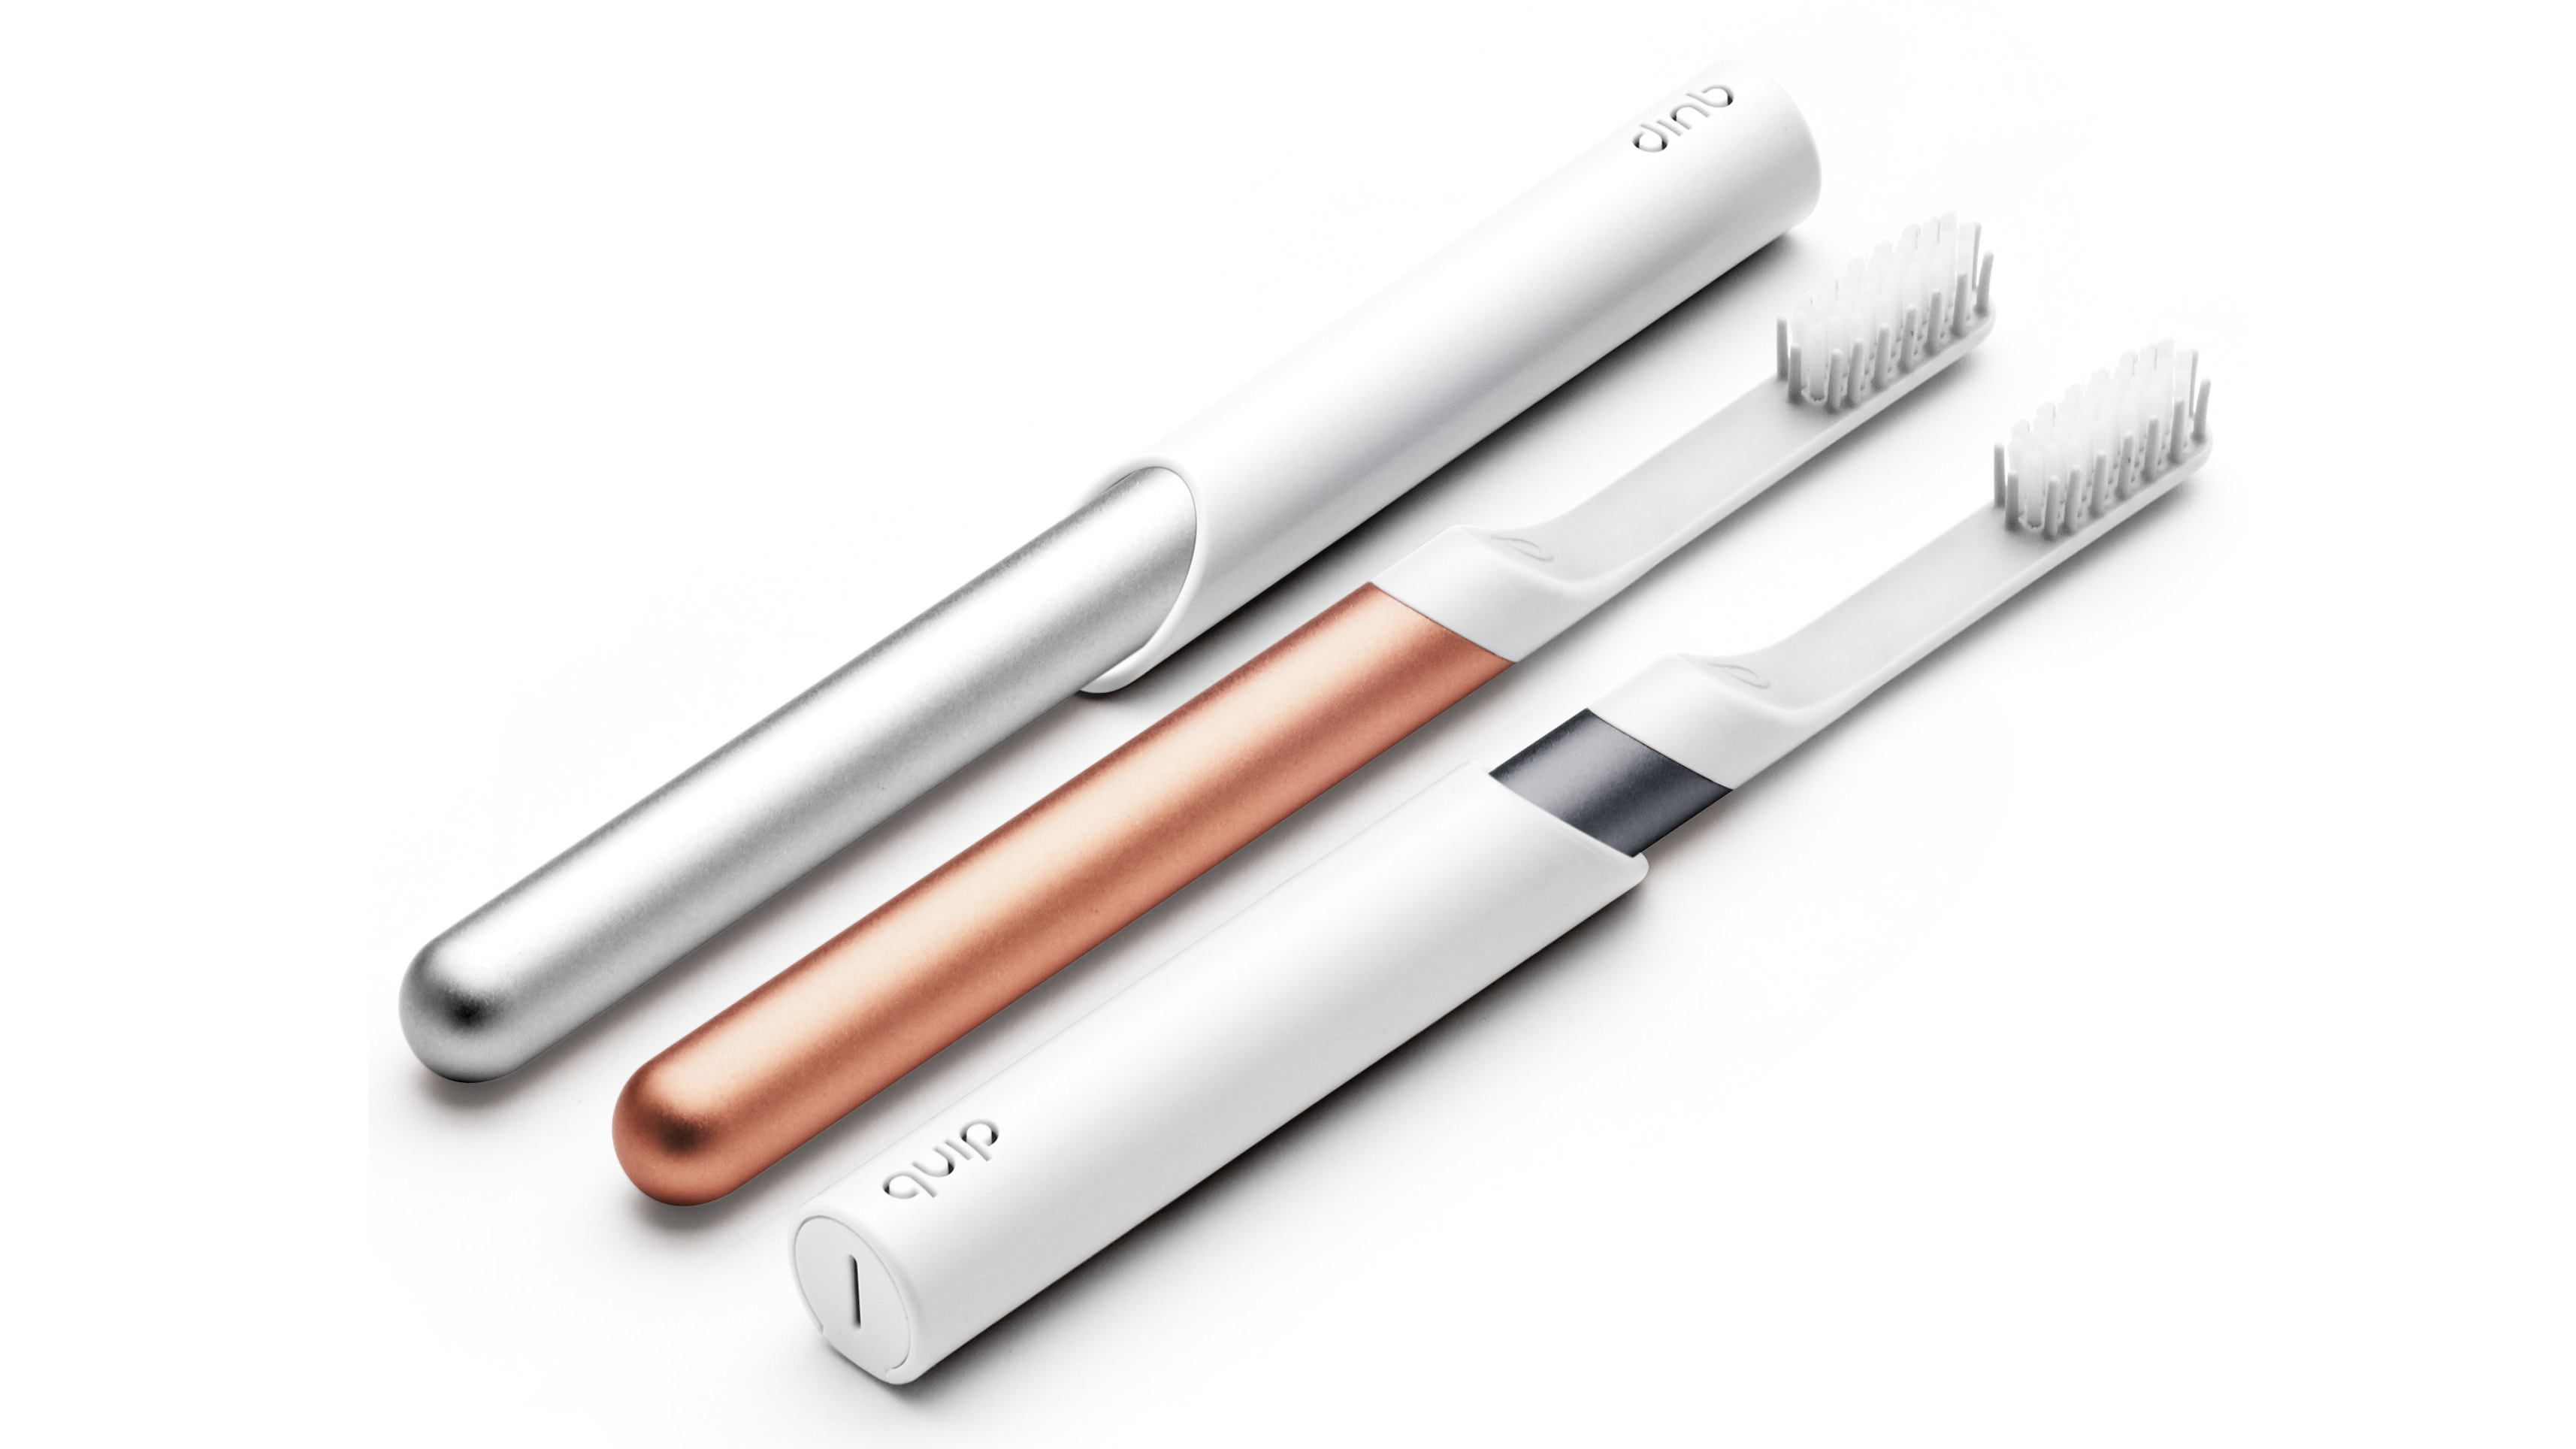 Big W Electric Toothbrush I Used Quip S Electric Toothbrush For A Week And I Totally Get The